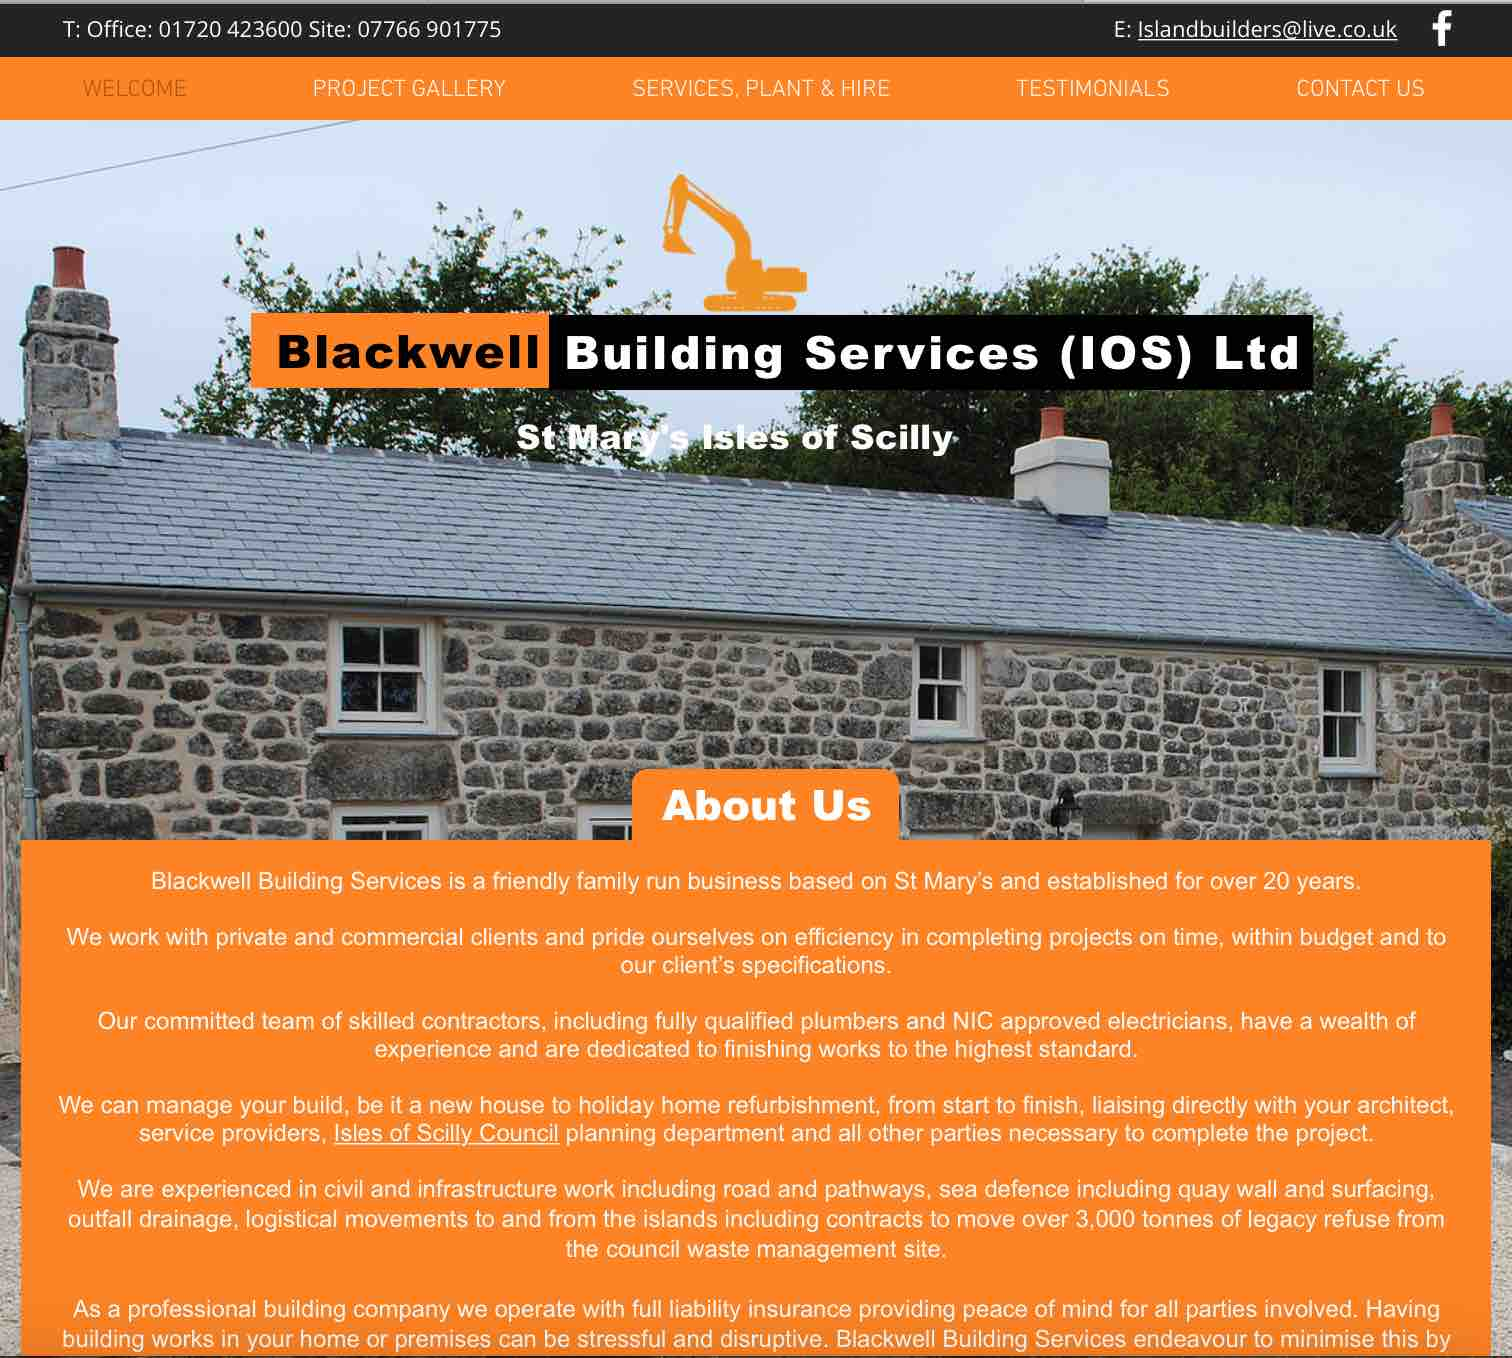 Blackwell Building Services